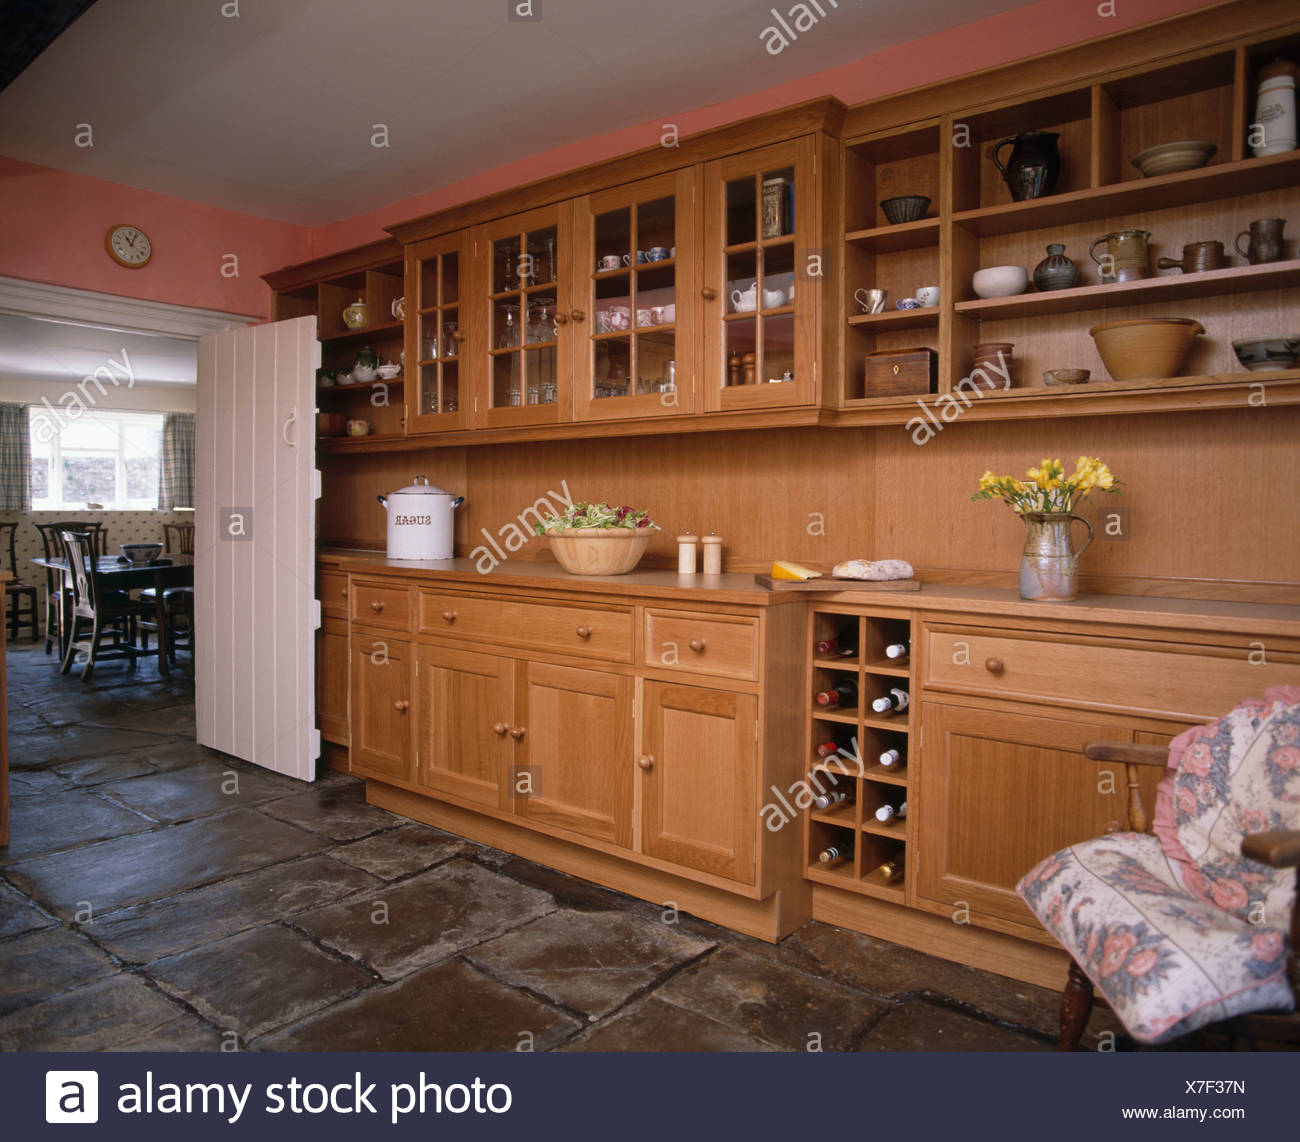 Pine Wood Units And Wall Cupboards With Glass Doors In Eighties